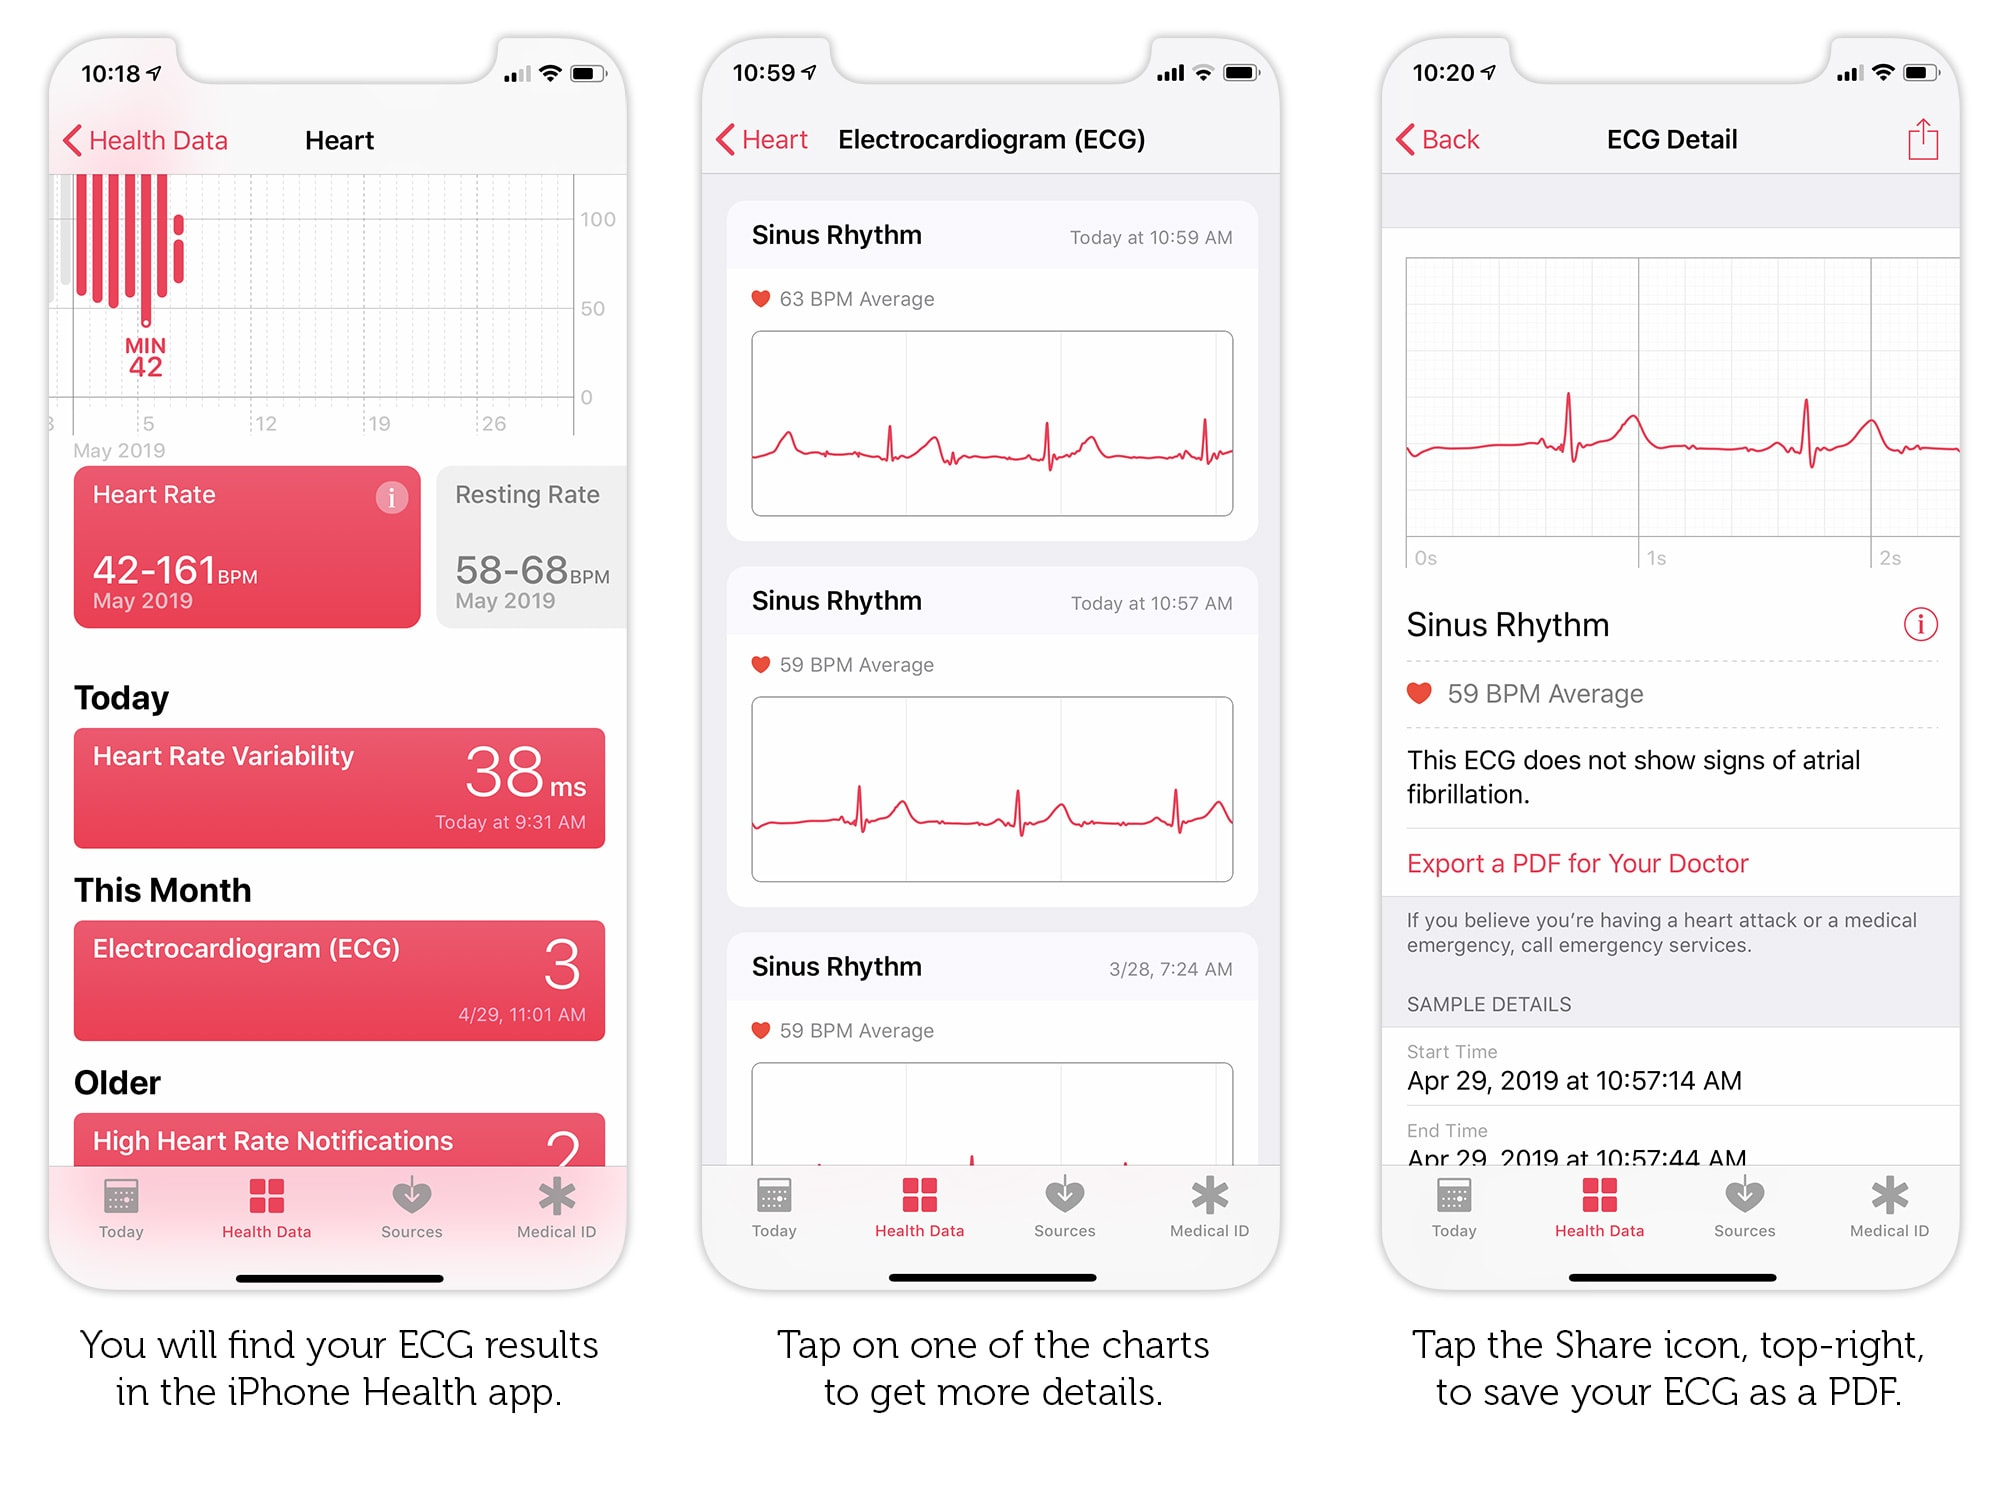 How to export your Apple Watch ECG result as a PDF to show your doctor